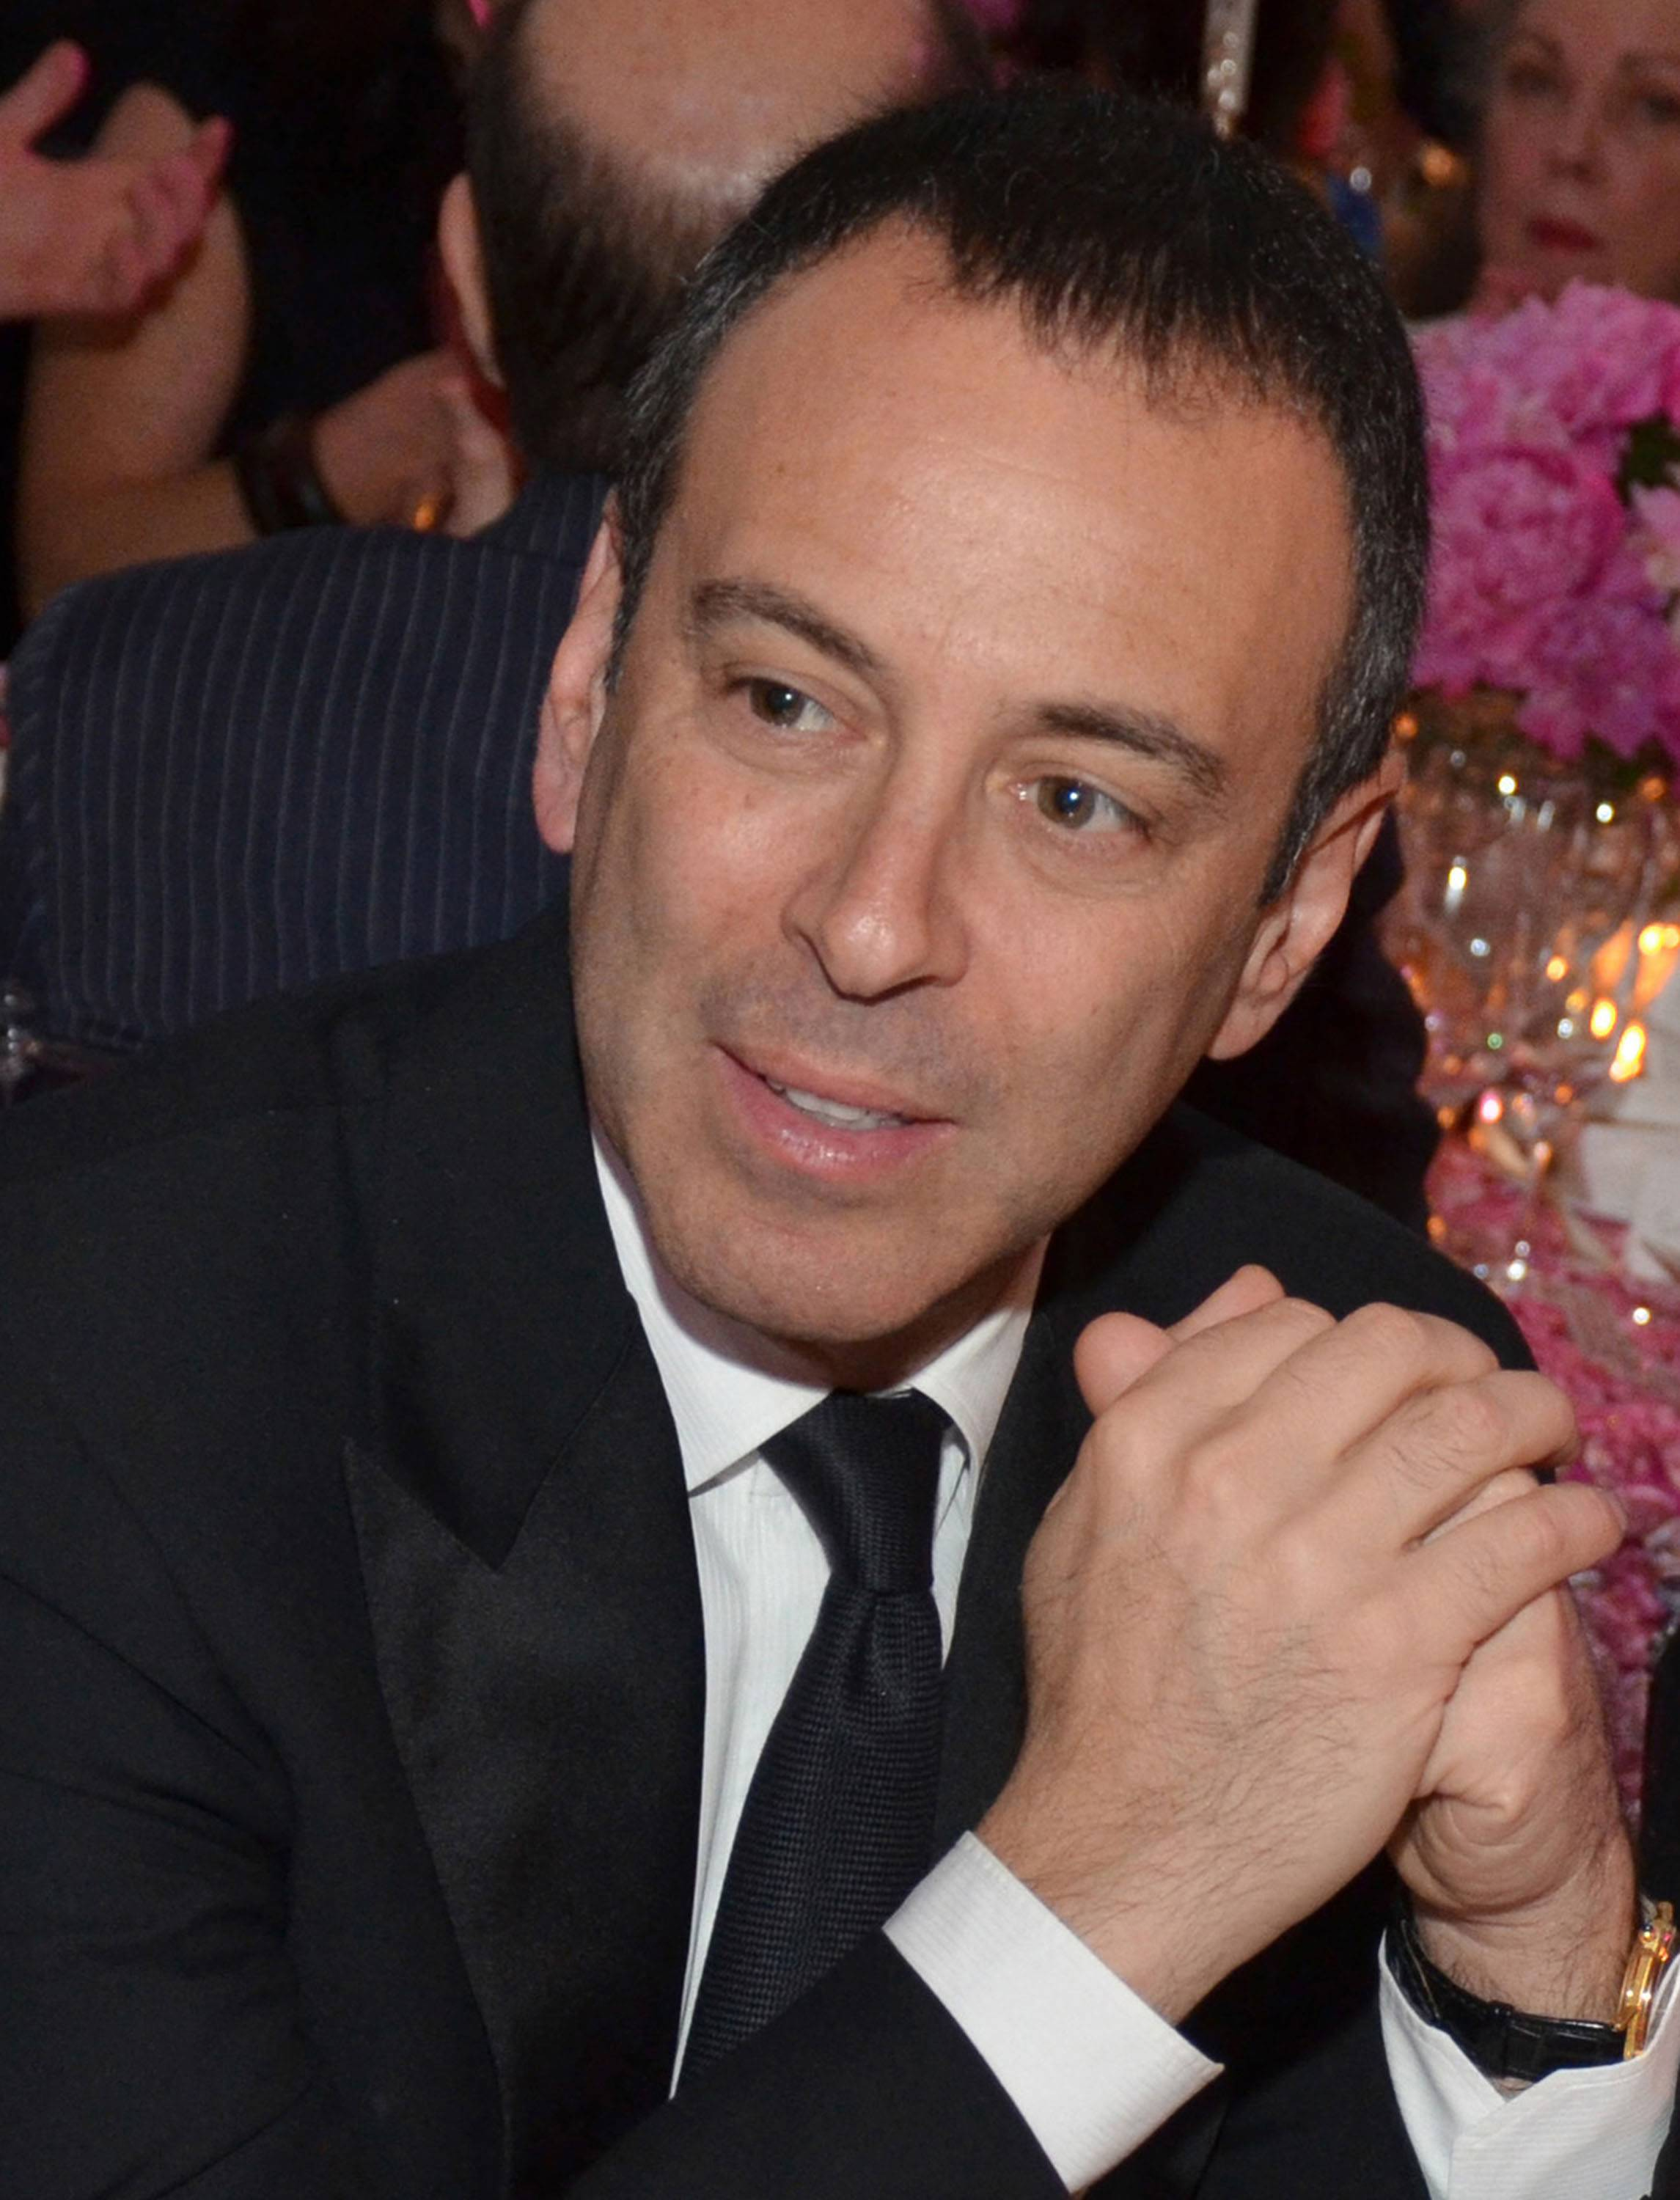 Sears Holdings Corp. Chief Executive Officer Edward Lampert